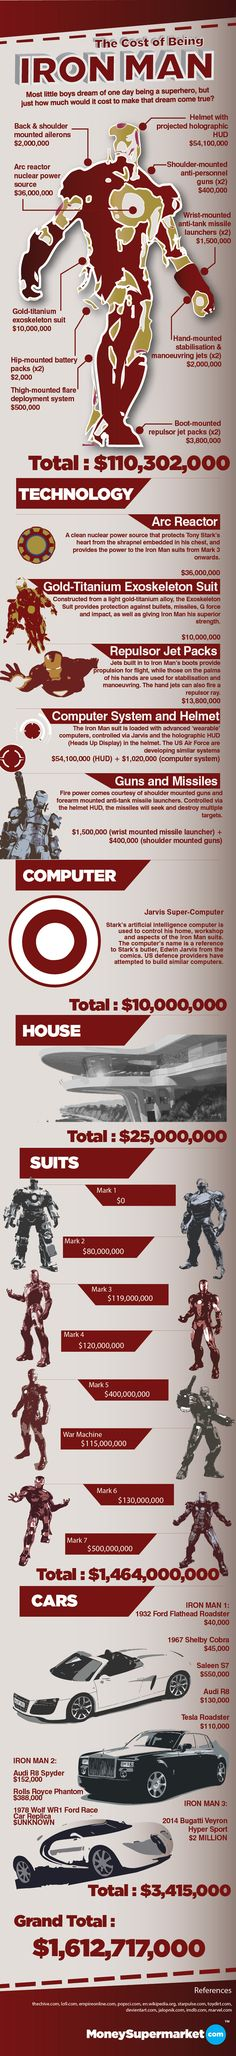 The Cost of Being IRON MAN - Infographic - News - GeekTyrant